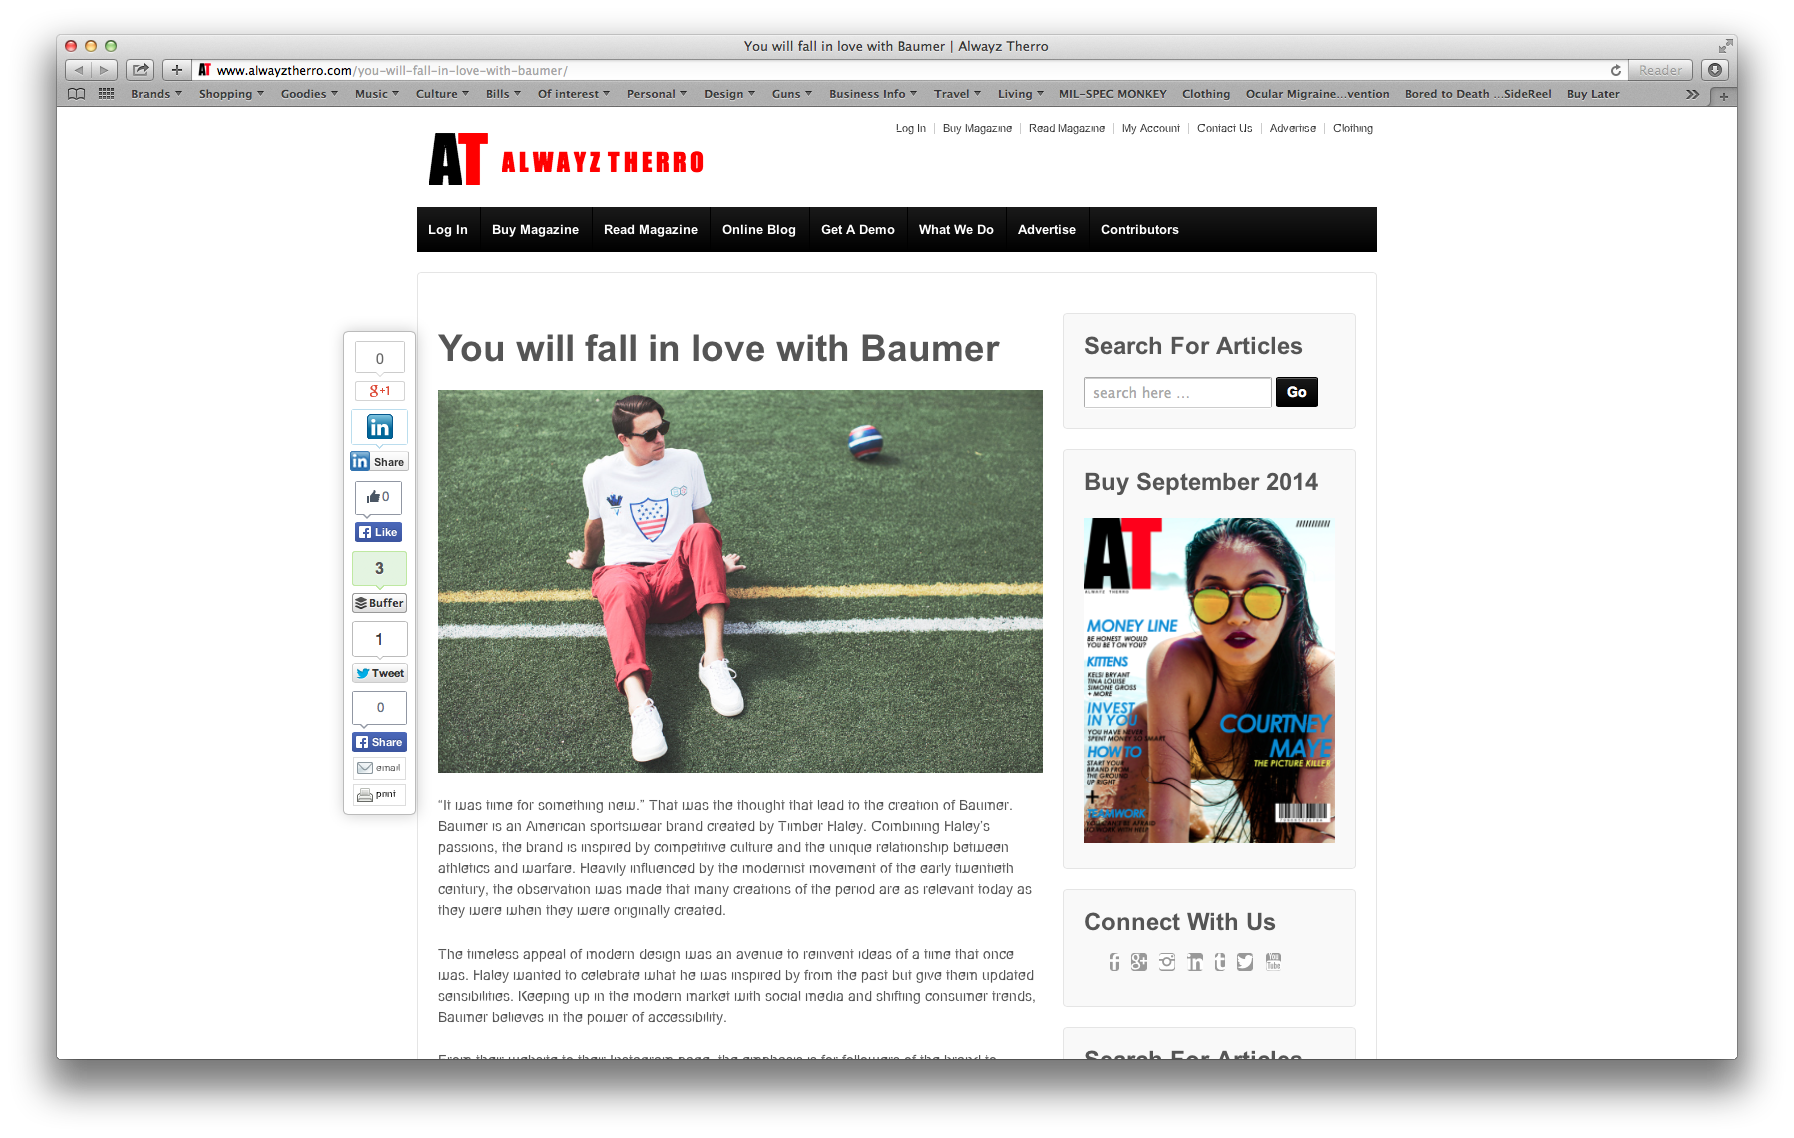 Thank you Always Therro for your kind words.  Read the article at:  http://www.alwayztherro.com/you-will-fall-in-love-with-baumer/